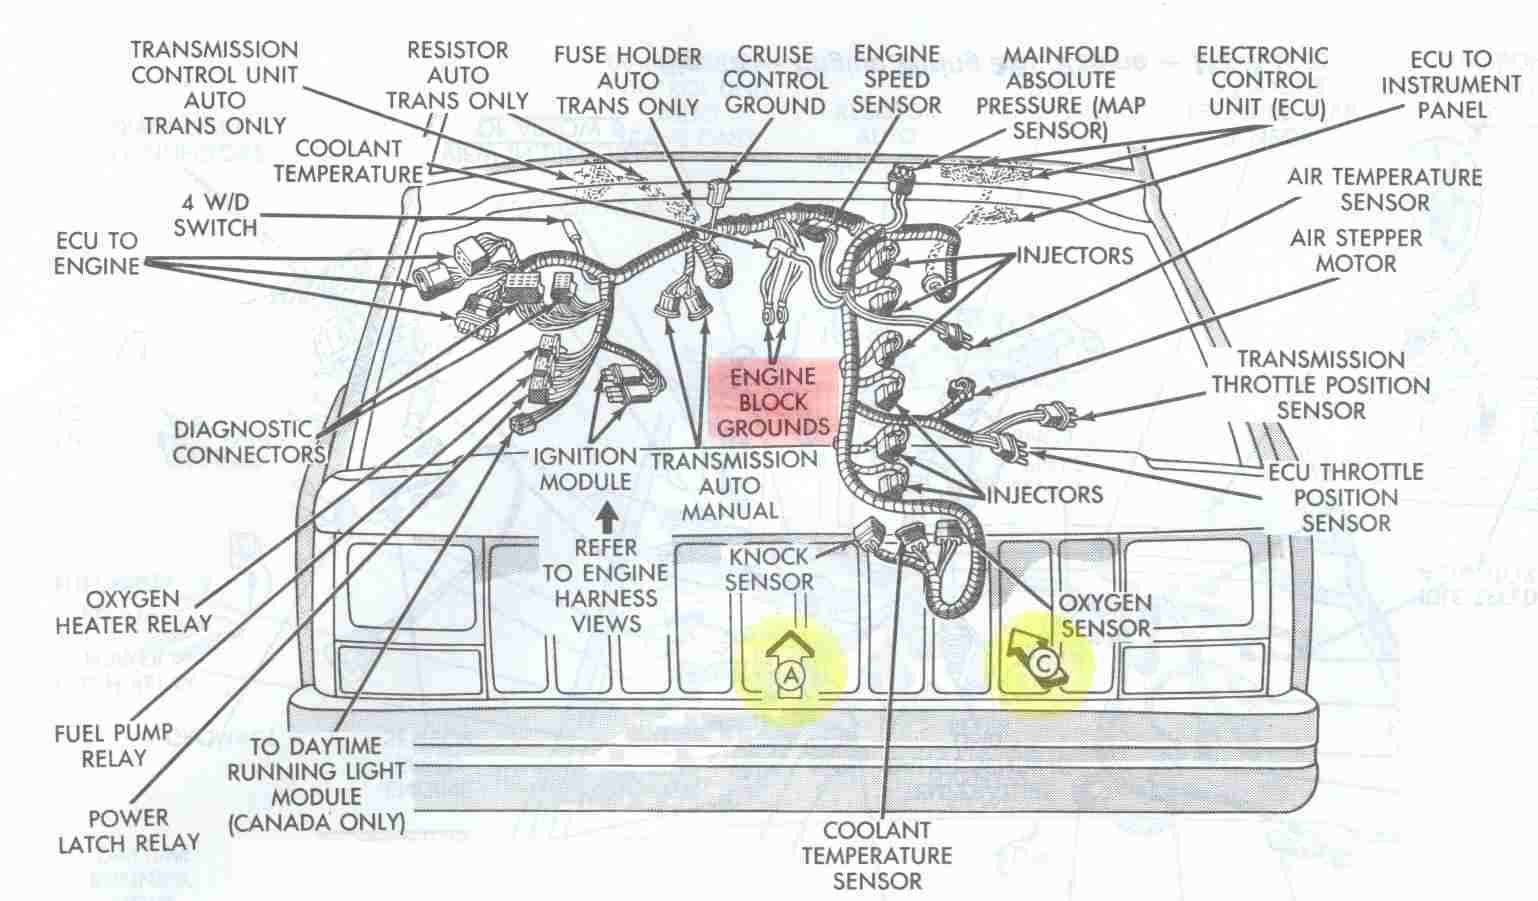 ab0134a7d9e021431187af597eb4aeca engine bay schematic showing major electrical ground points for 1999 jeep cherokee ignition wiring diagram at suagrazia.org